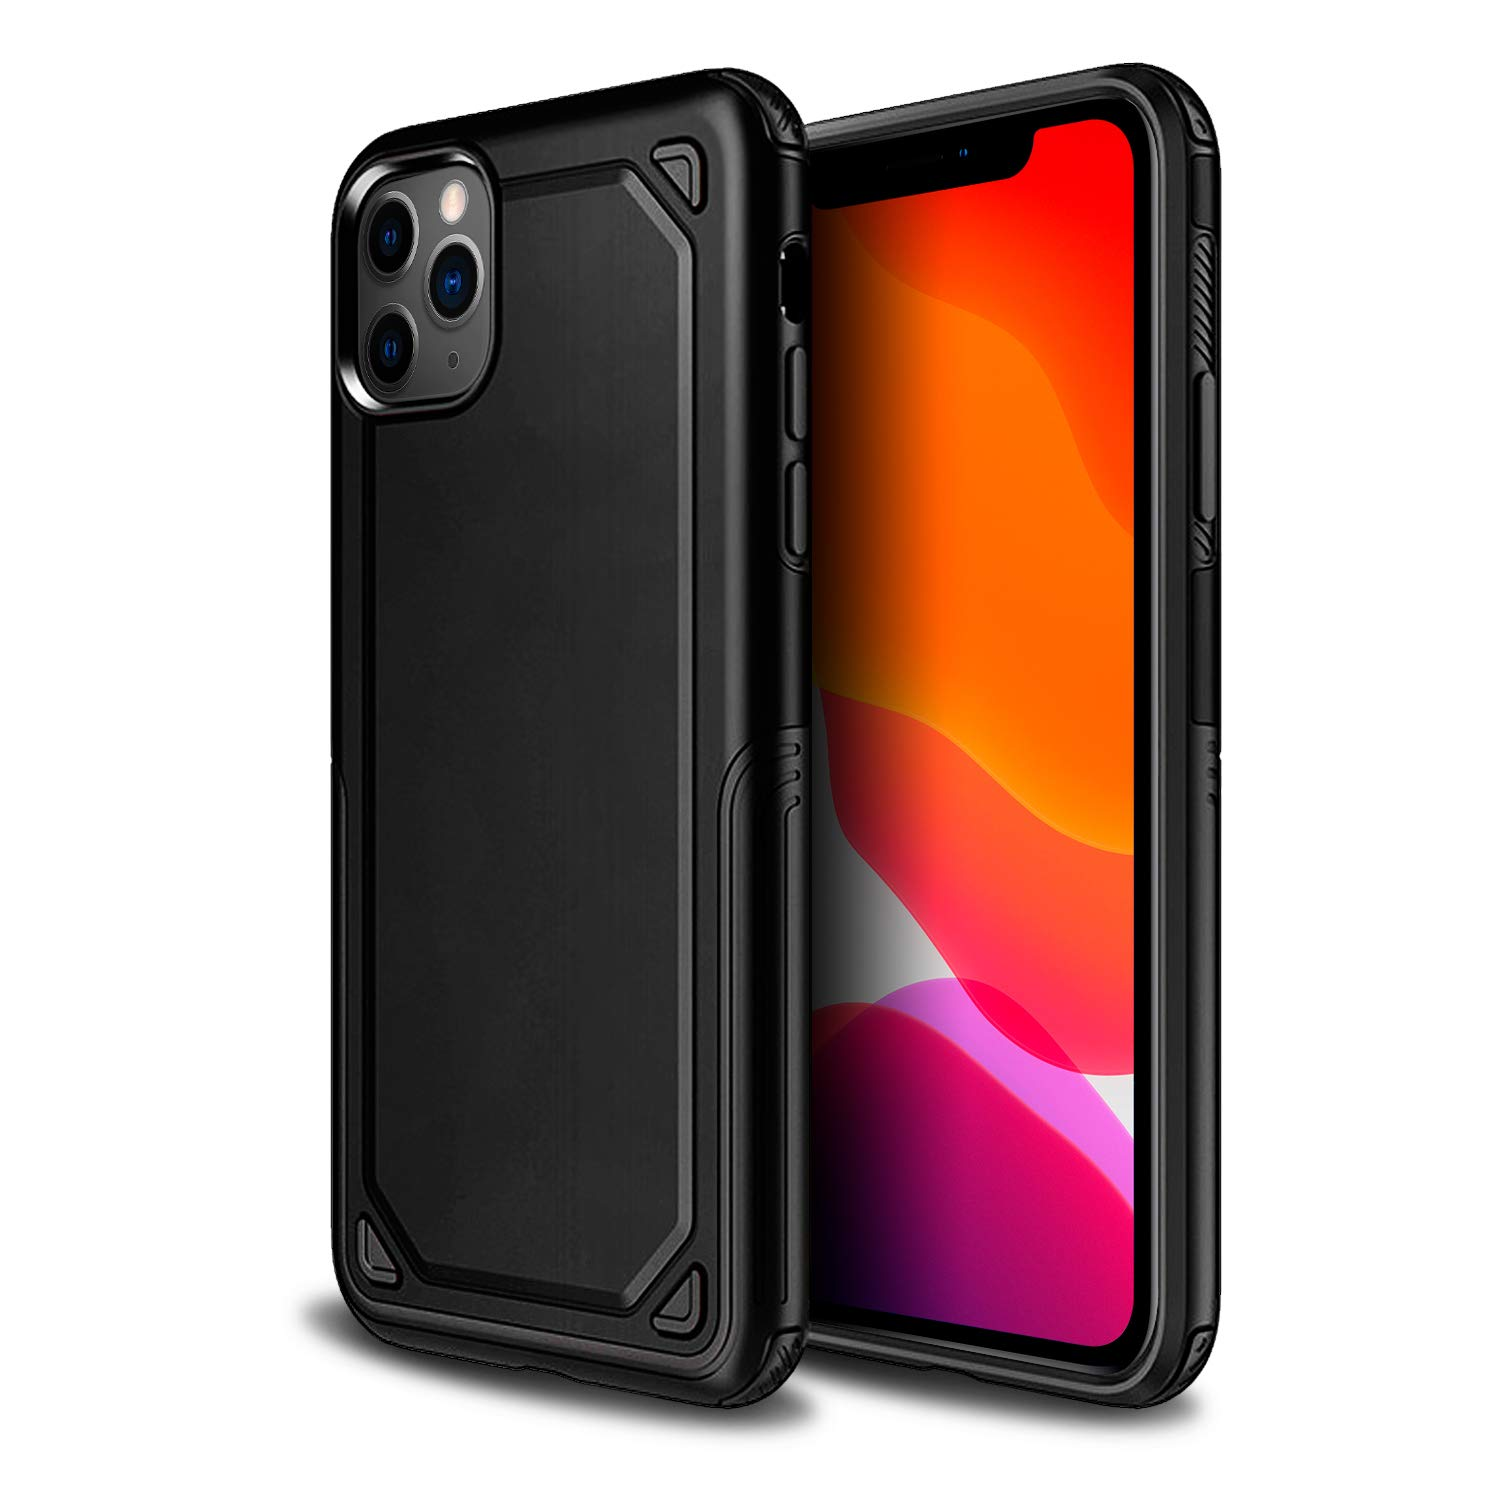 Olixar for iPhone 11 Pro Max Protective Case - Hard Rugged Armour Cover - Fortis - Shock Protection - Wireless Charging Compatible - Black